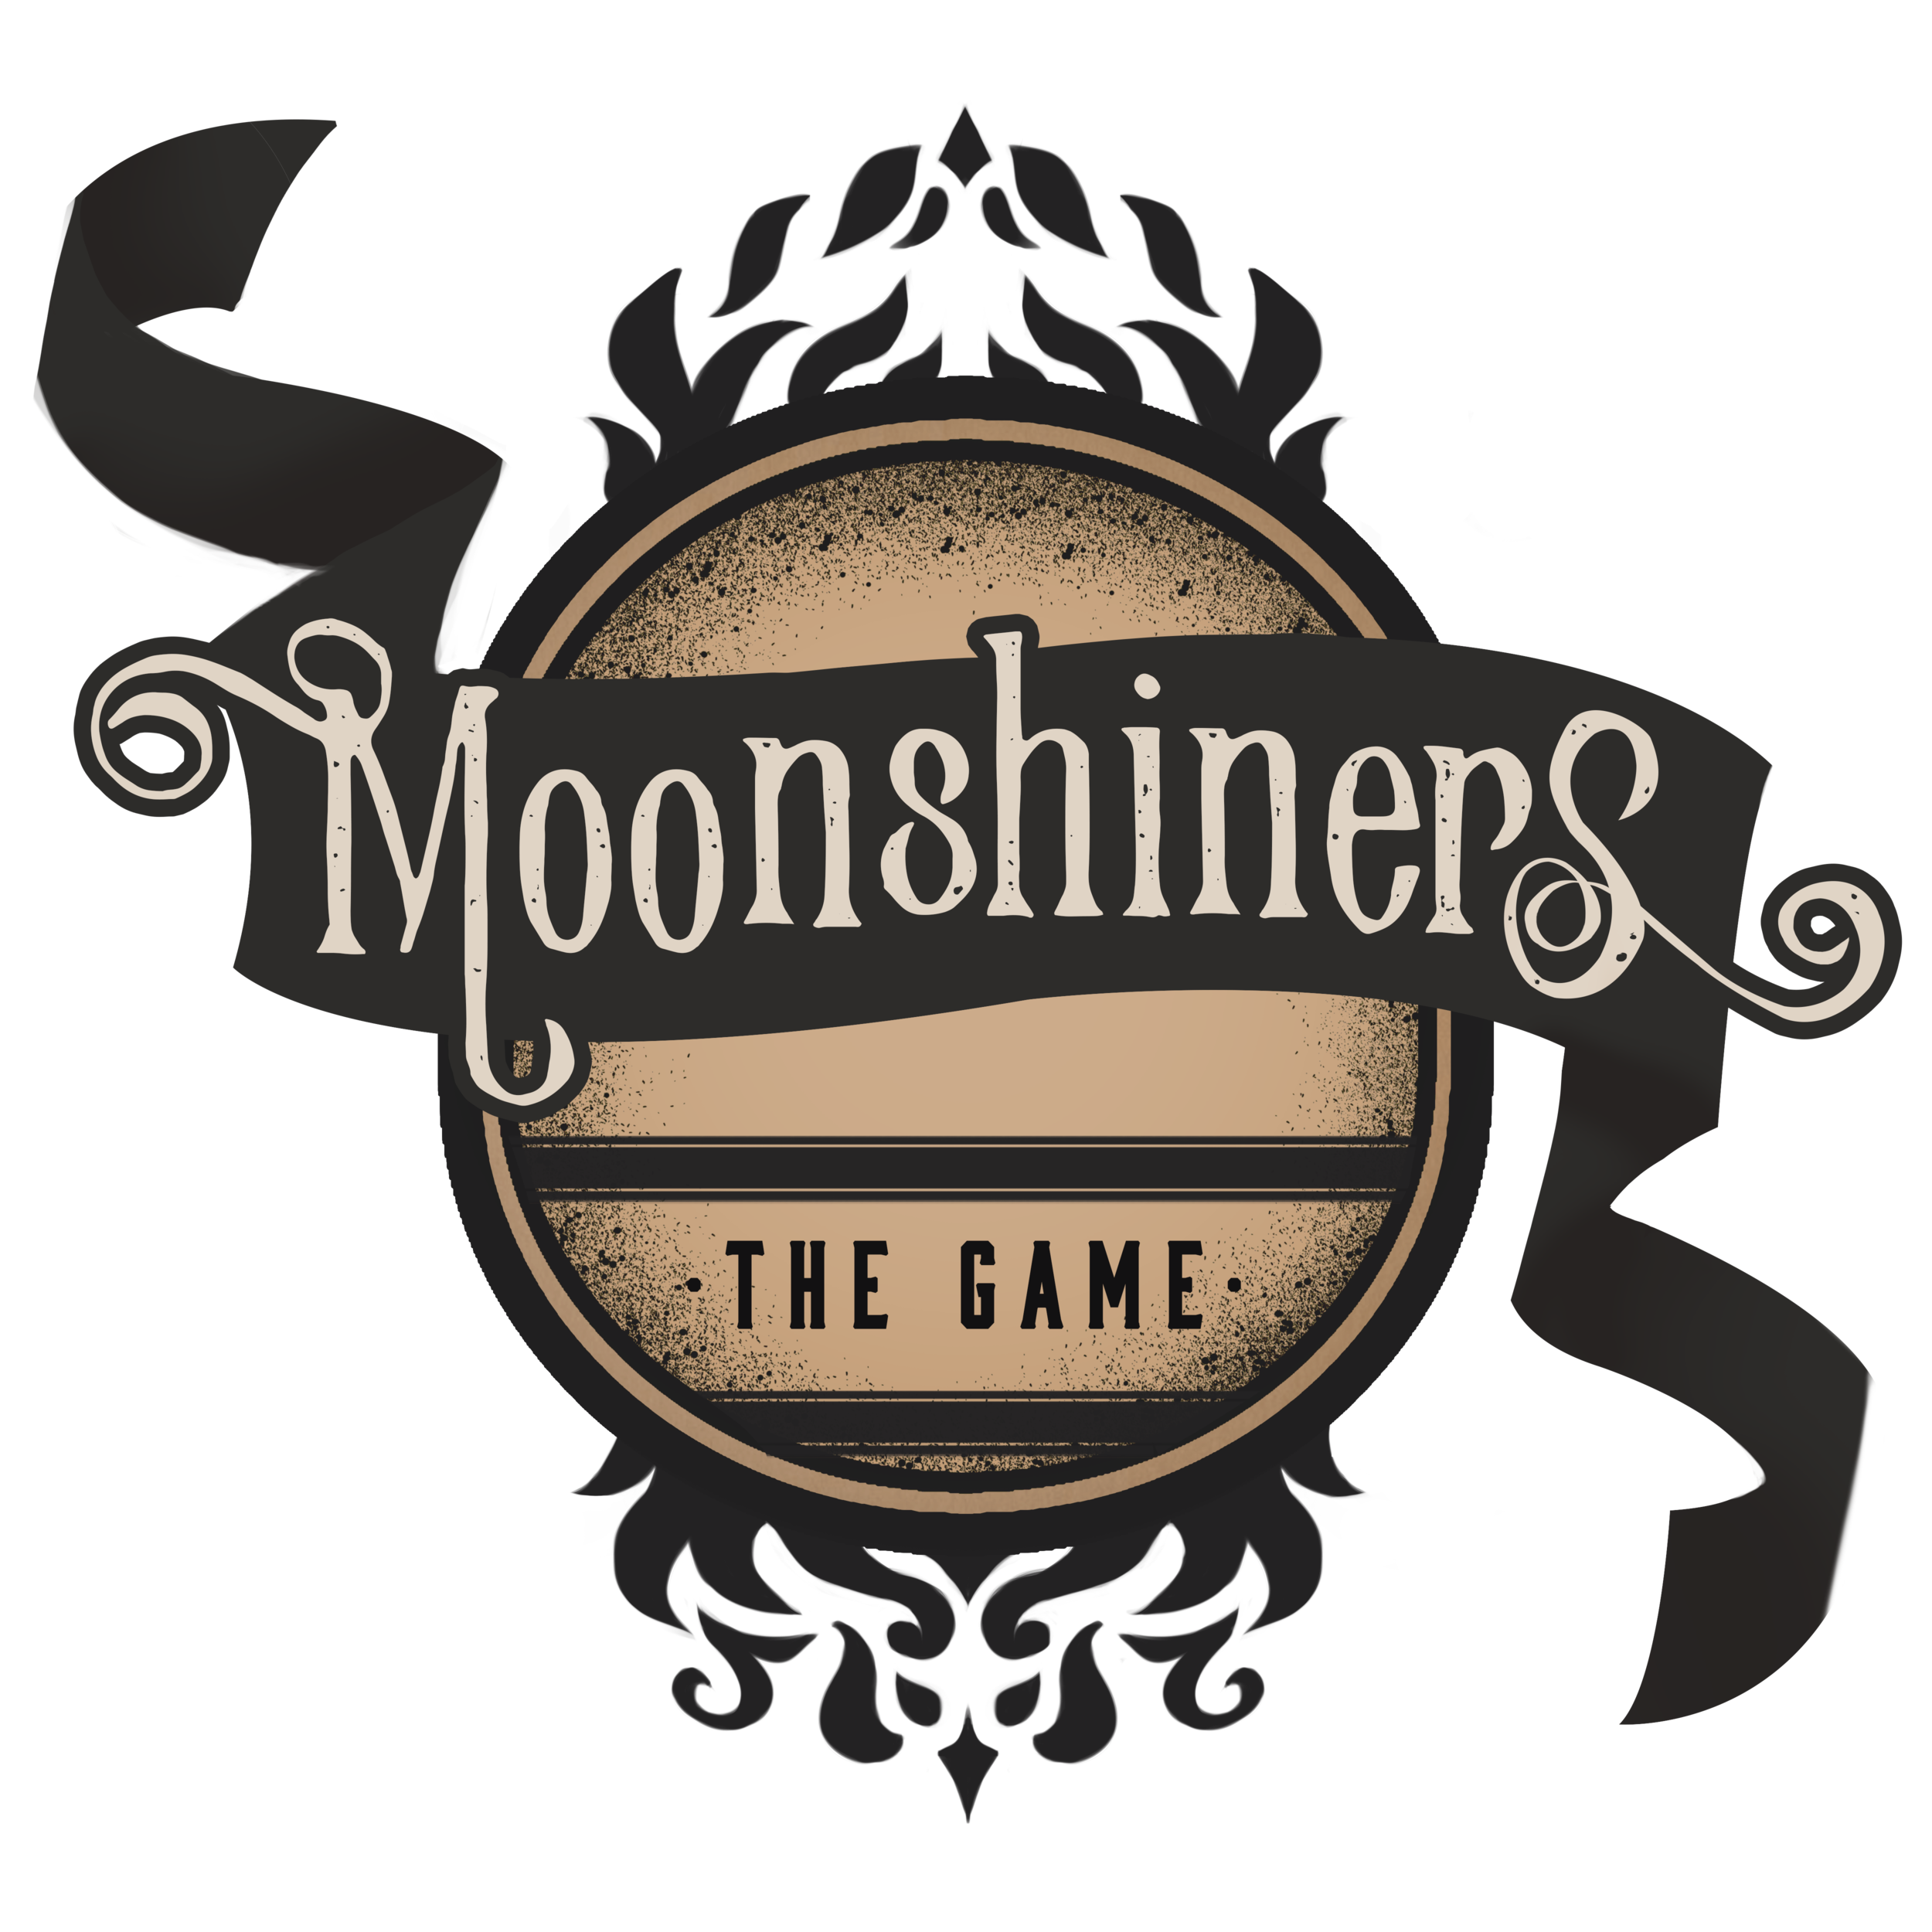 MOONSHINERS: THE GAME - In Moonshiners you will build your own moonshining empire in the heart of the Appalachian Mountains and flood the area with the best moonshine in years. But be careful, any mistake can cost you your freedom or beating from the moonshine competition. Moonshiners is a fully-blown moonshine simulator!